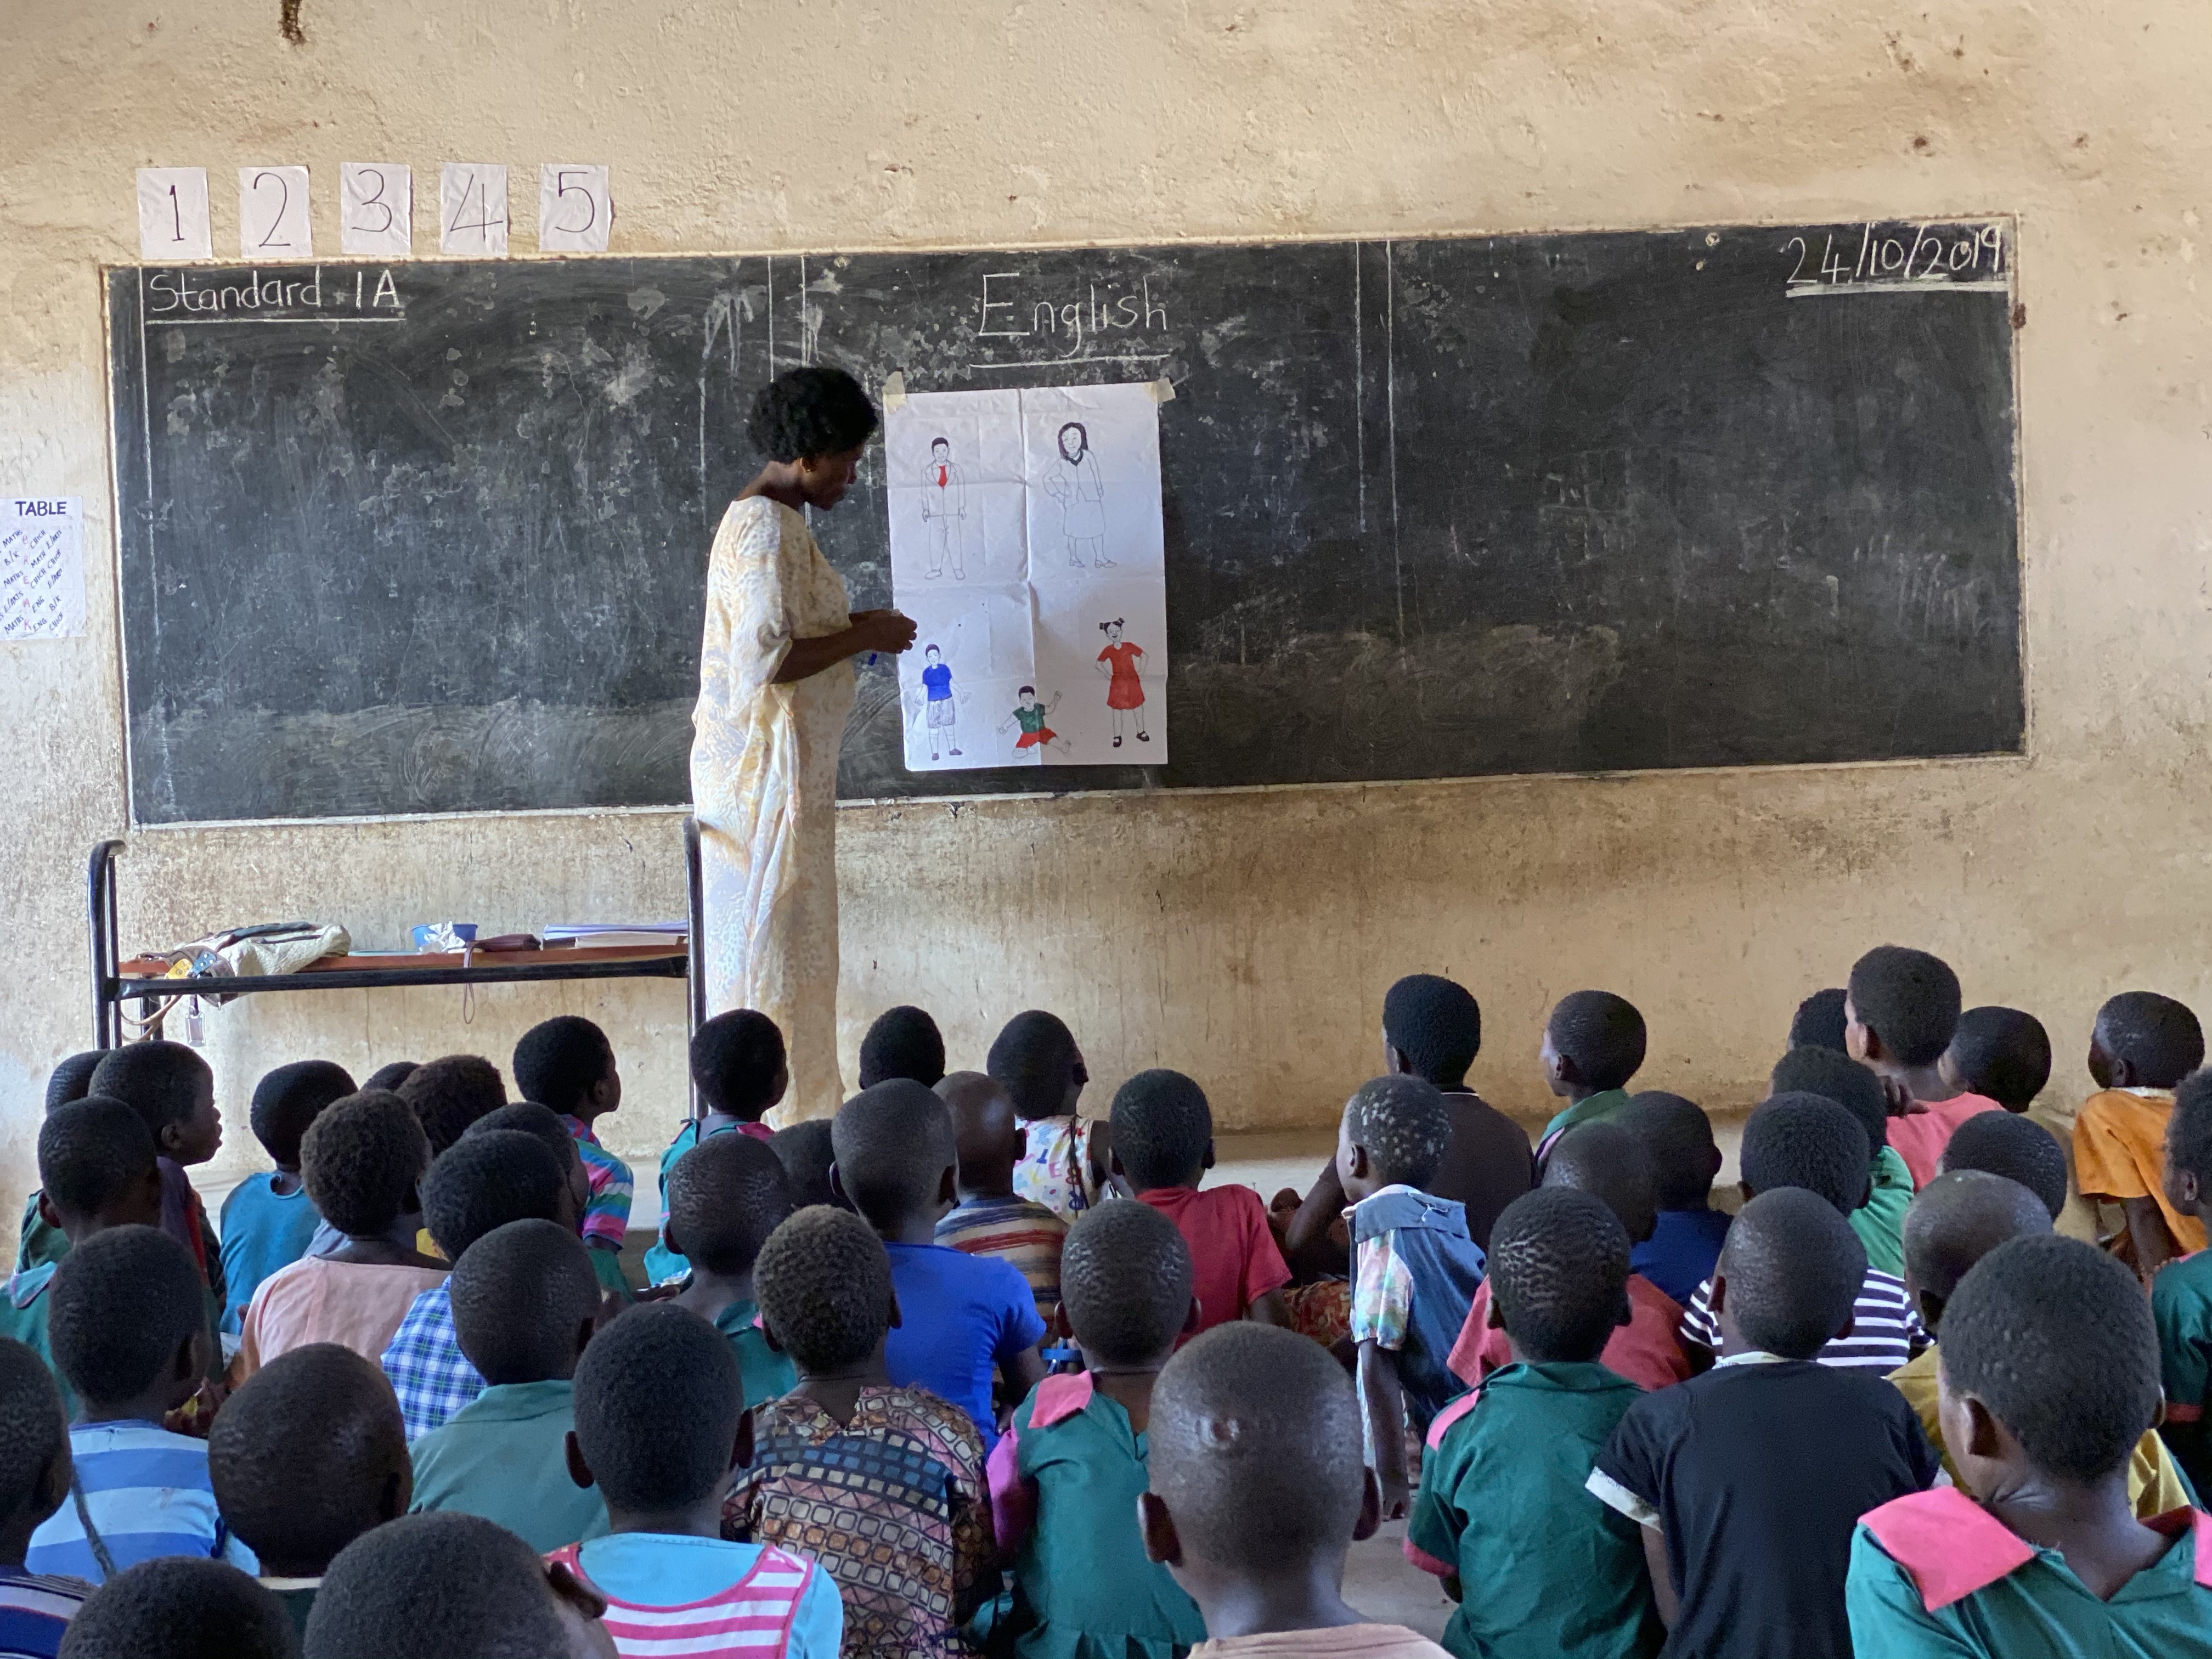 Classroom of students in Malawi